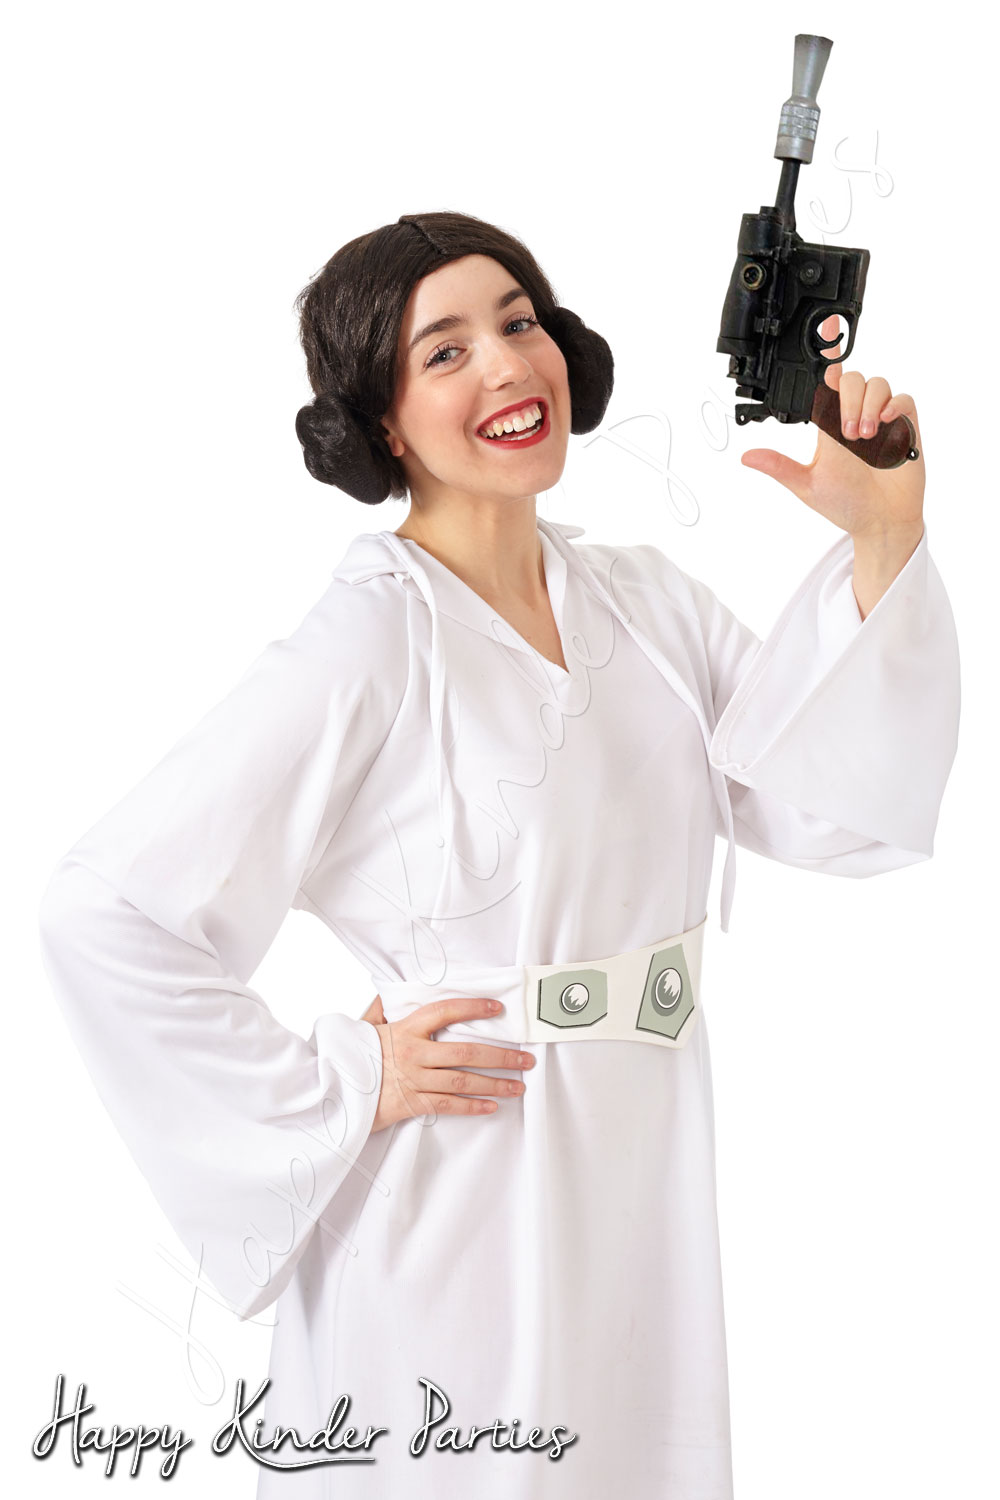 Star Wars Childrens Party Entertainer Costume